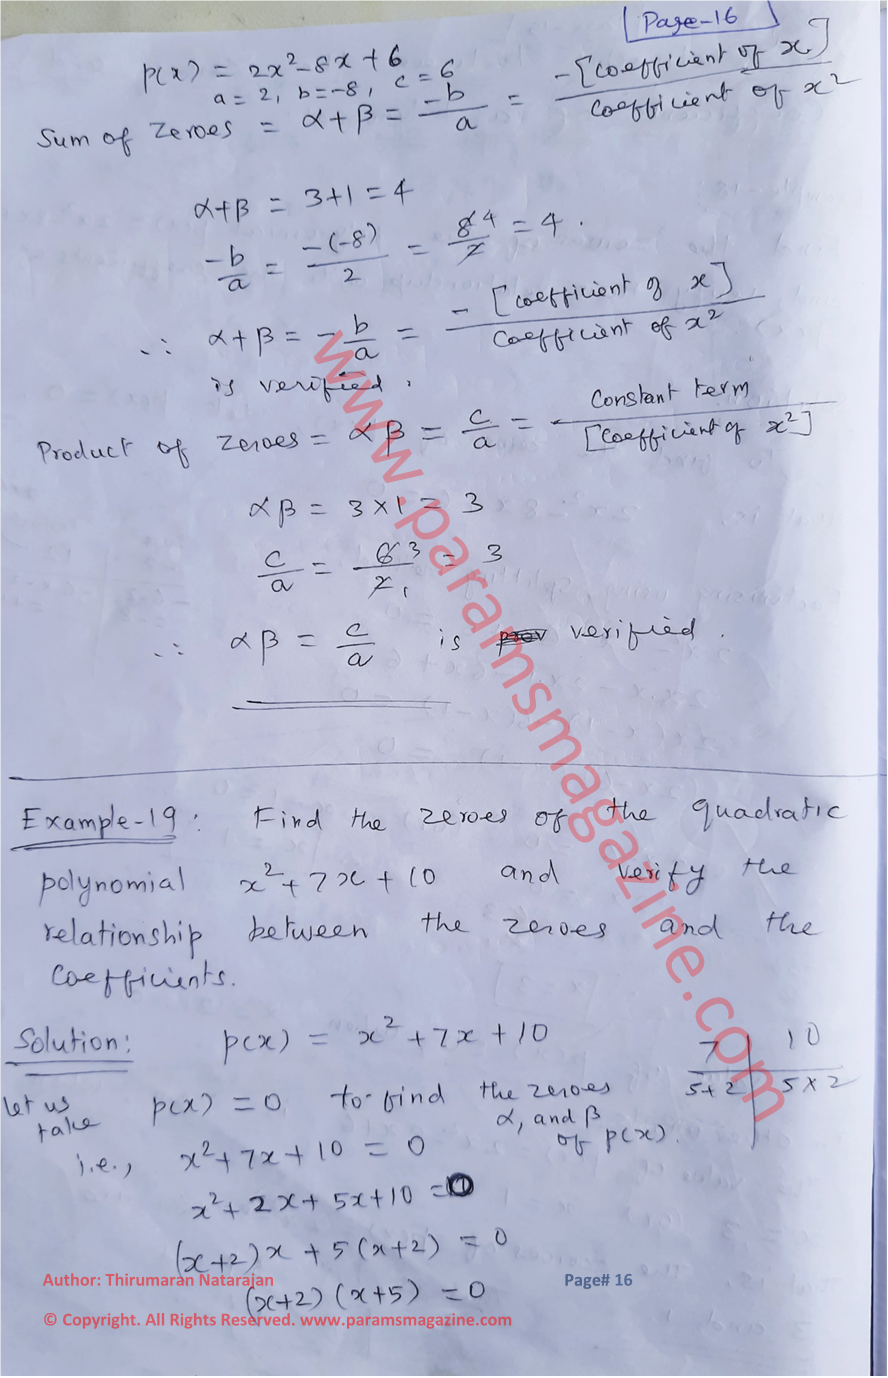 Class-10 - Polynomials - Notes - Page-16